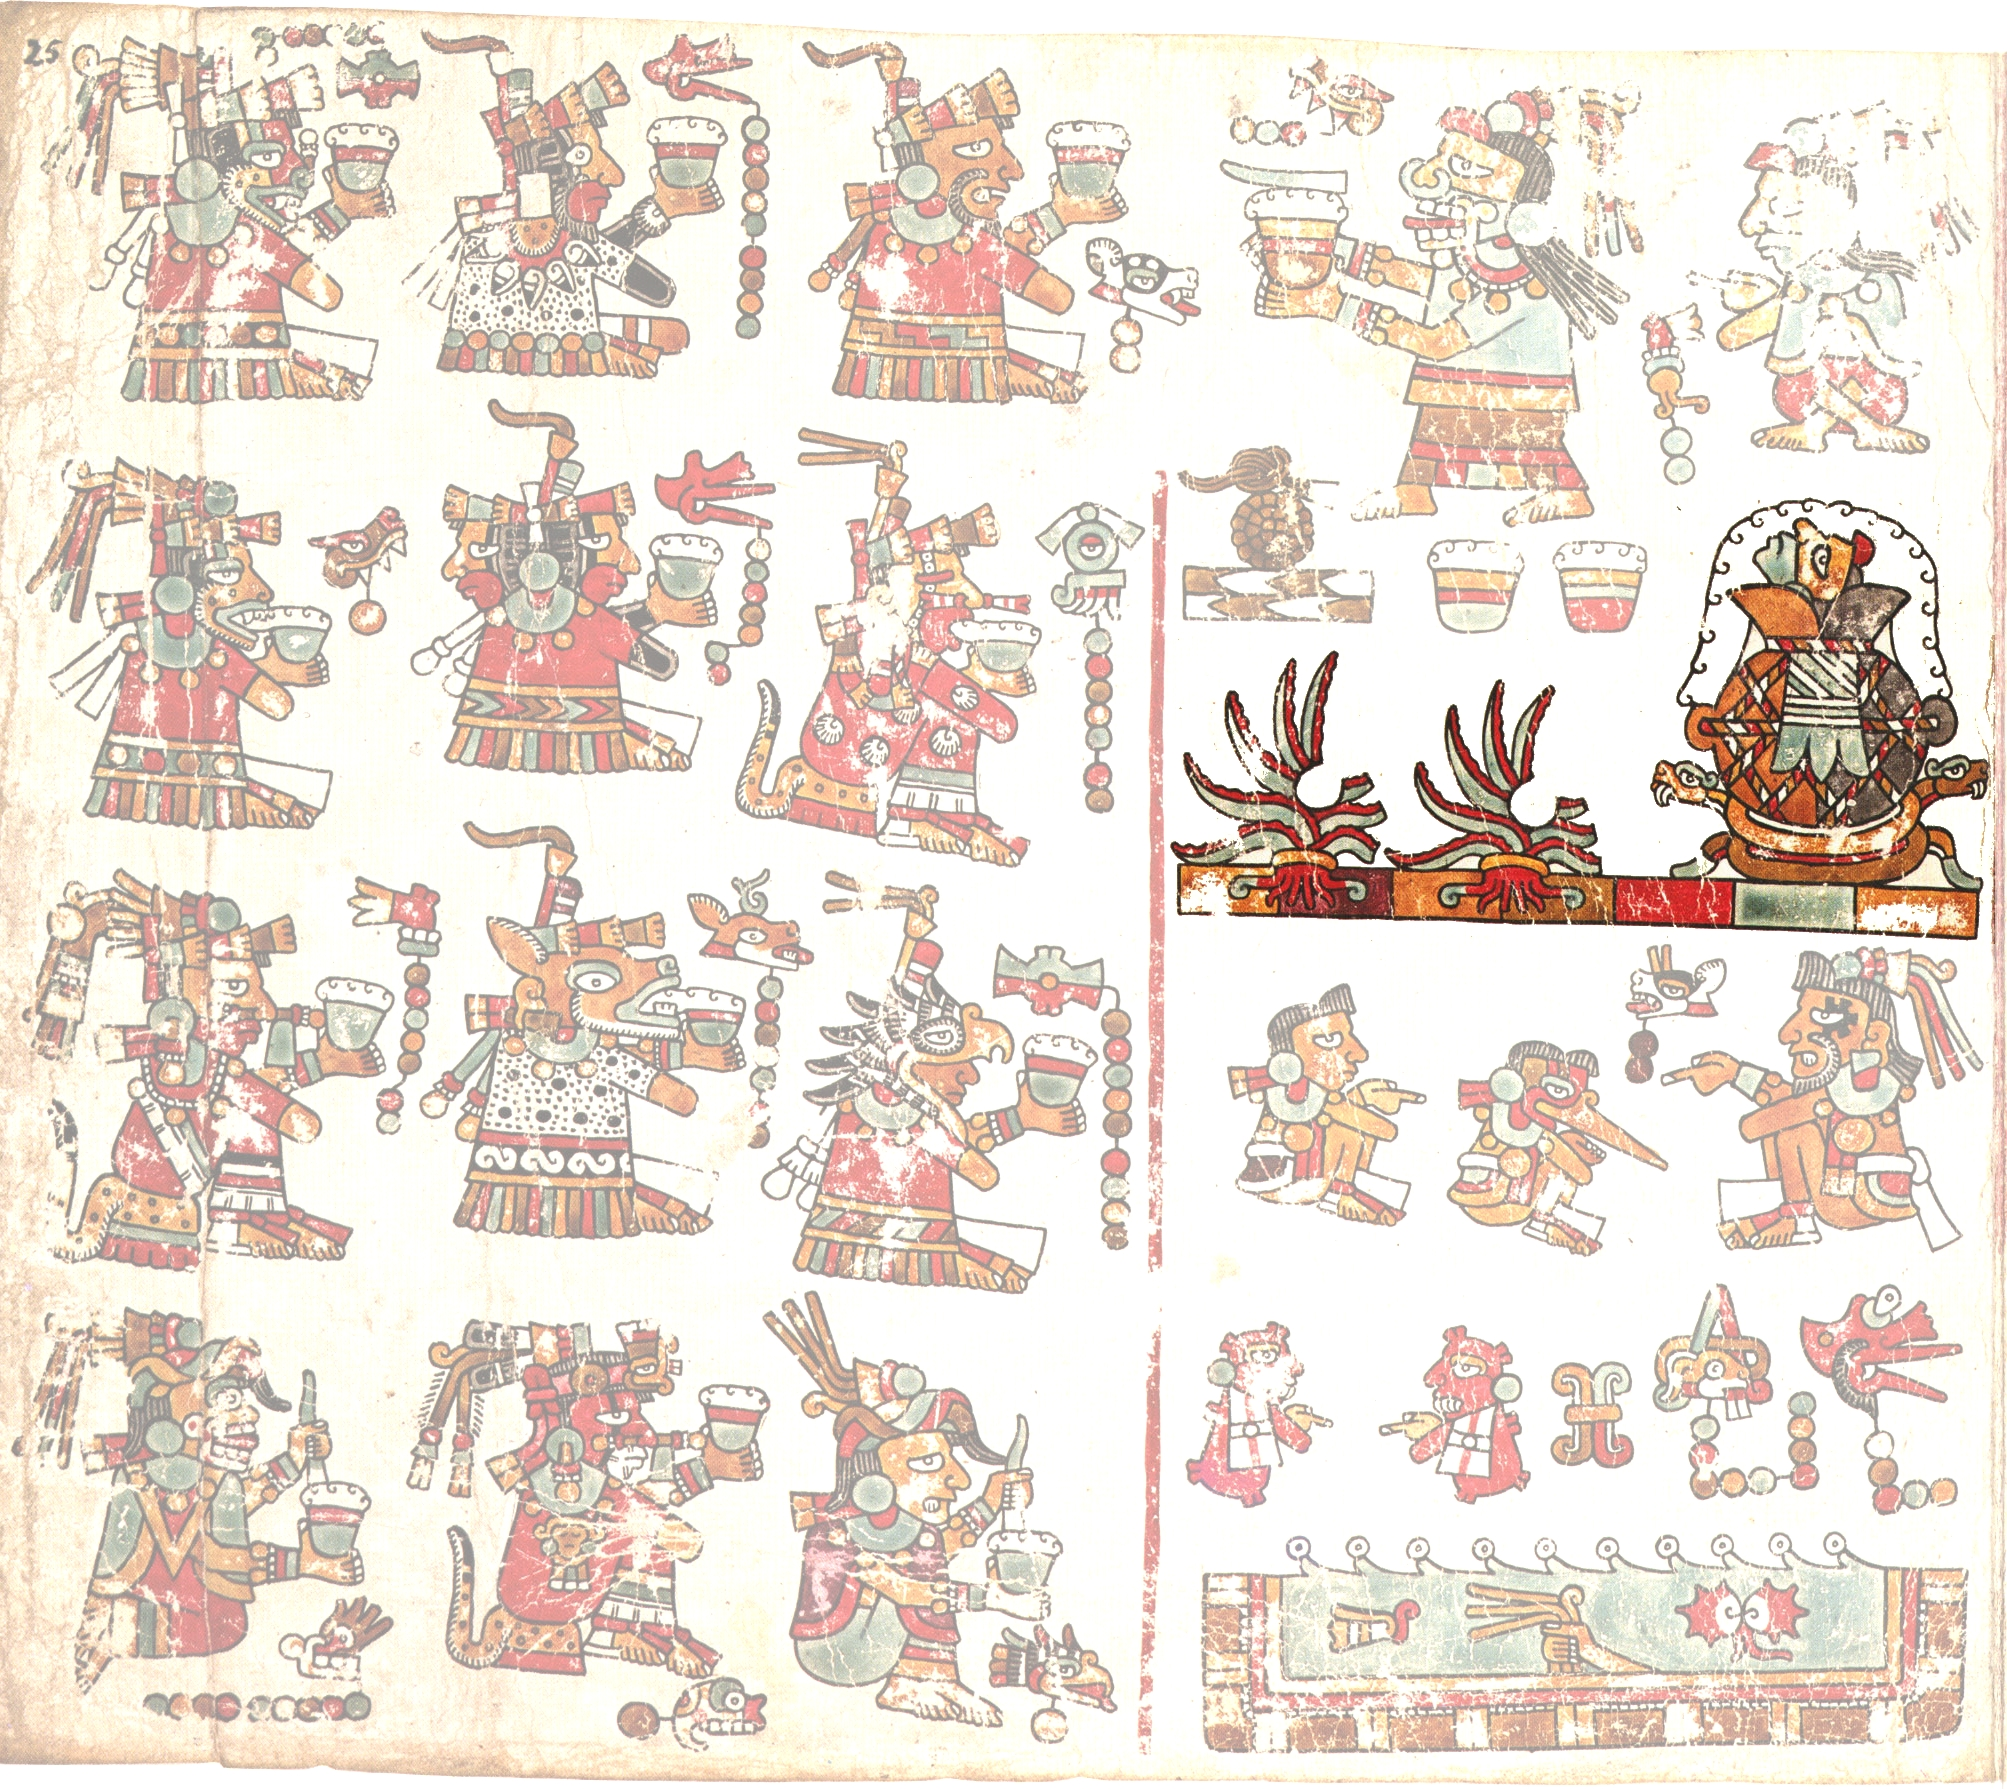 FIGURE 23. Page 25 of the Codex Vienna.